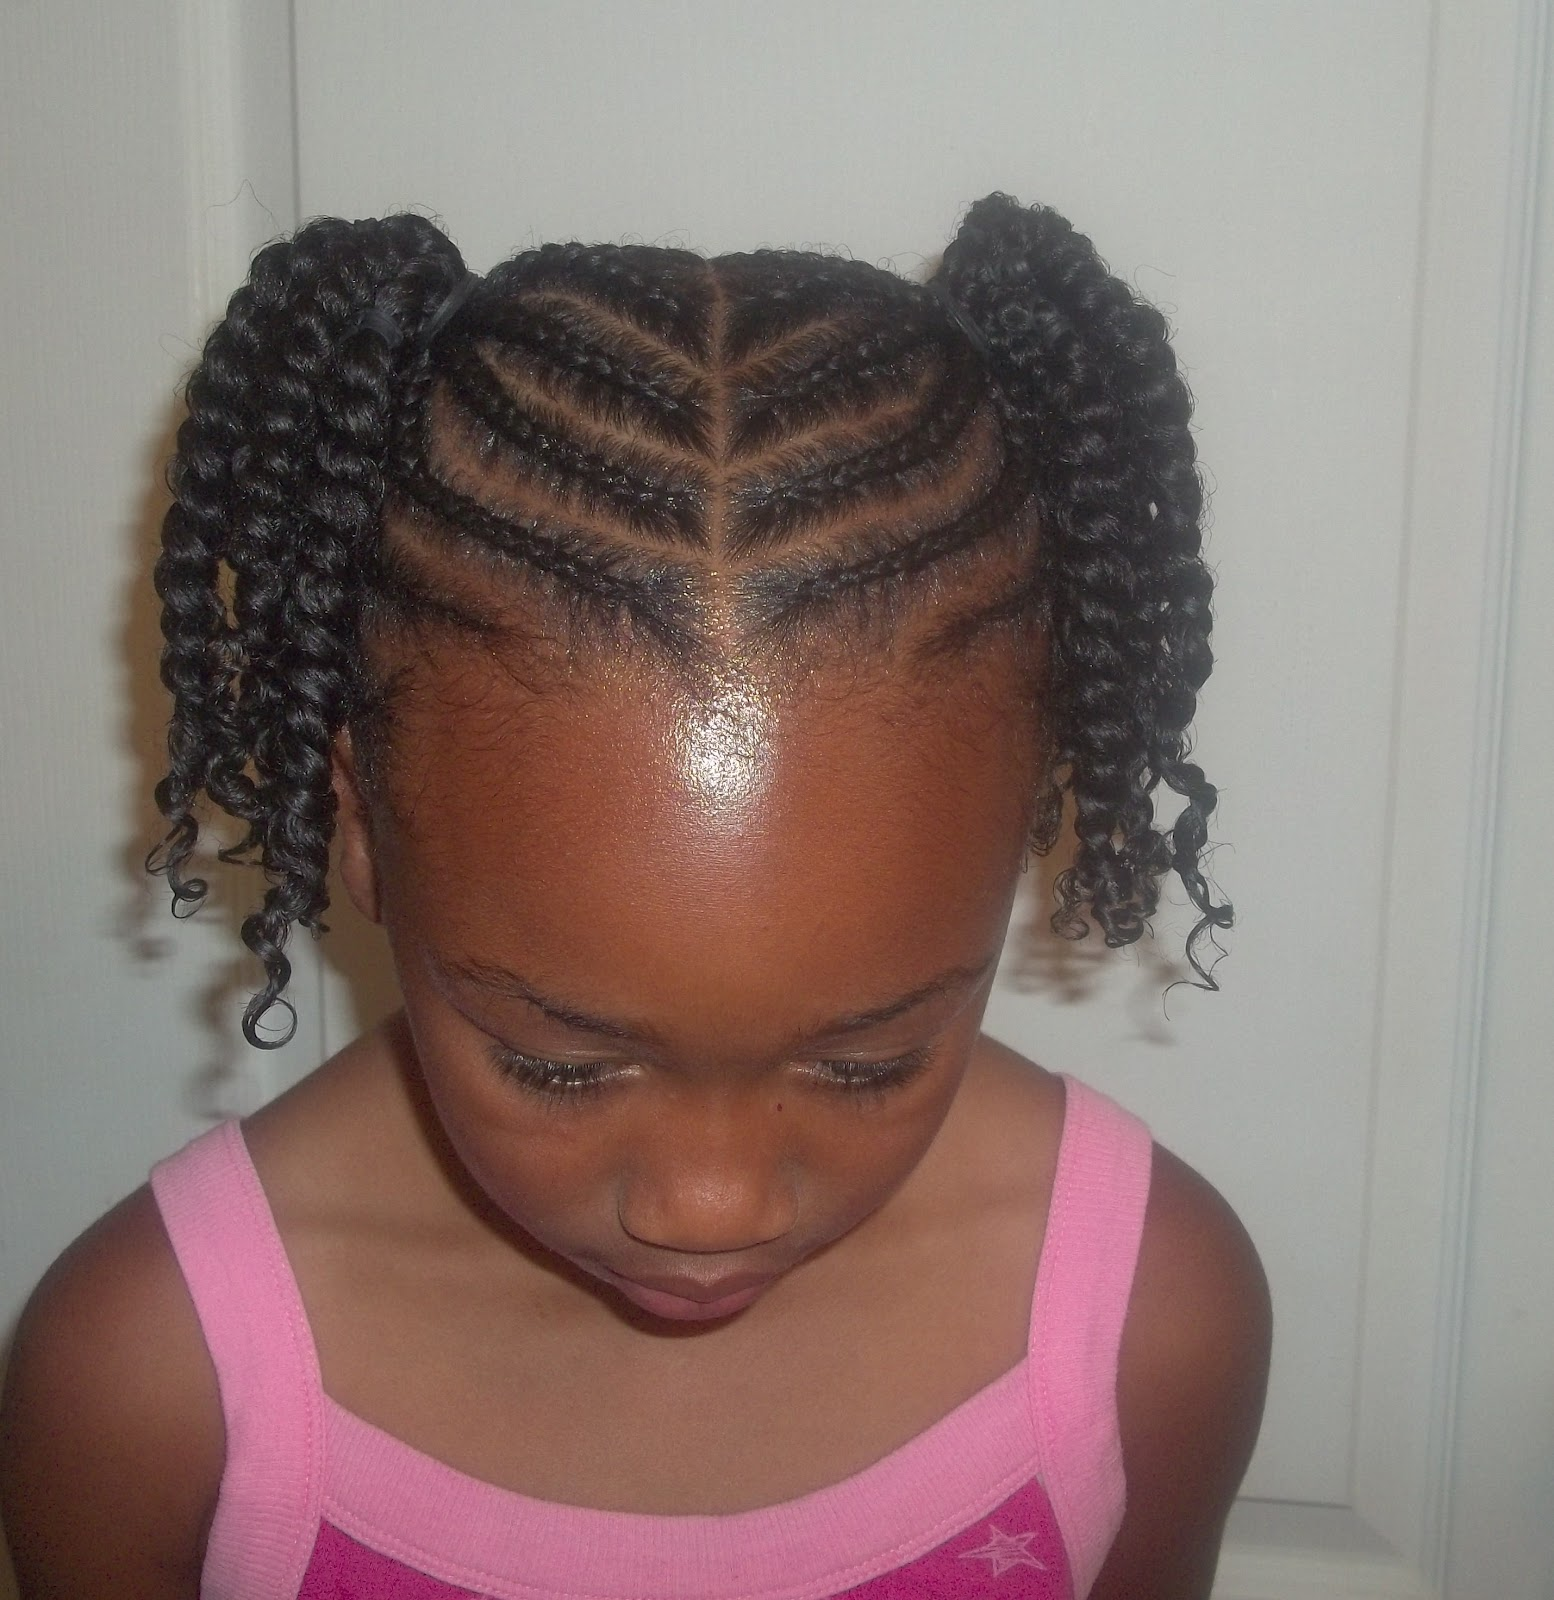 kids short hairstyles : Displaying 15> Images For - Black Kids Cornrow Hairstyles...